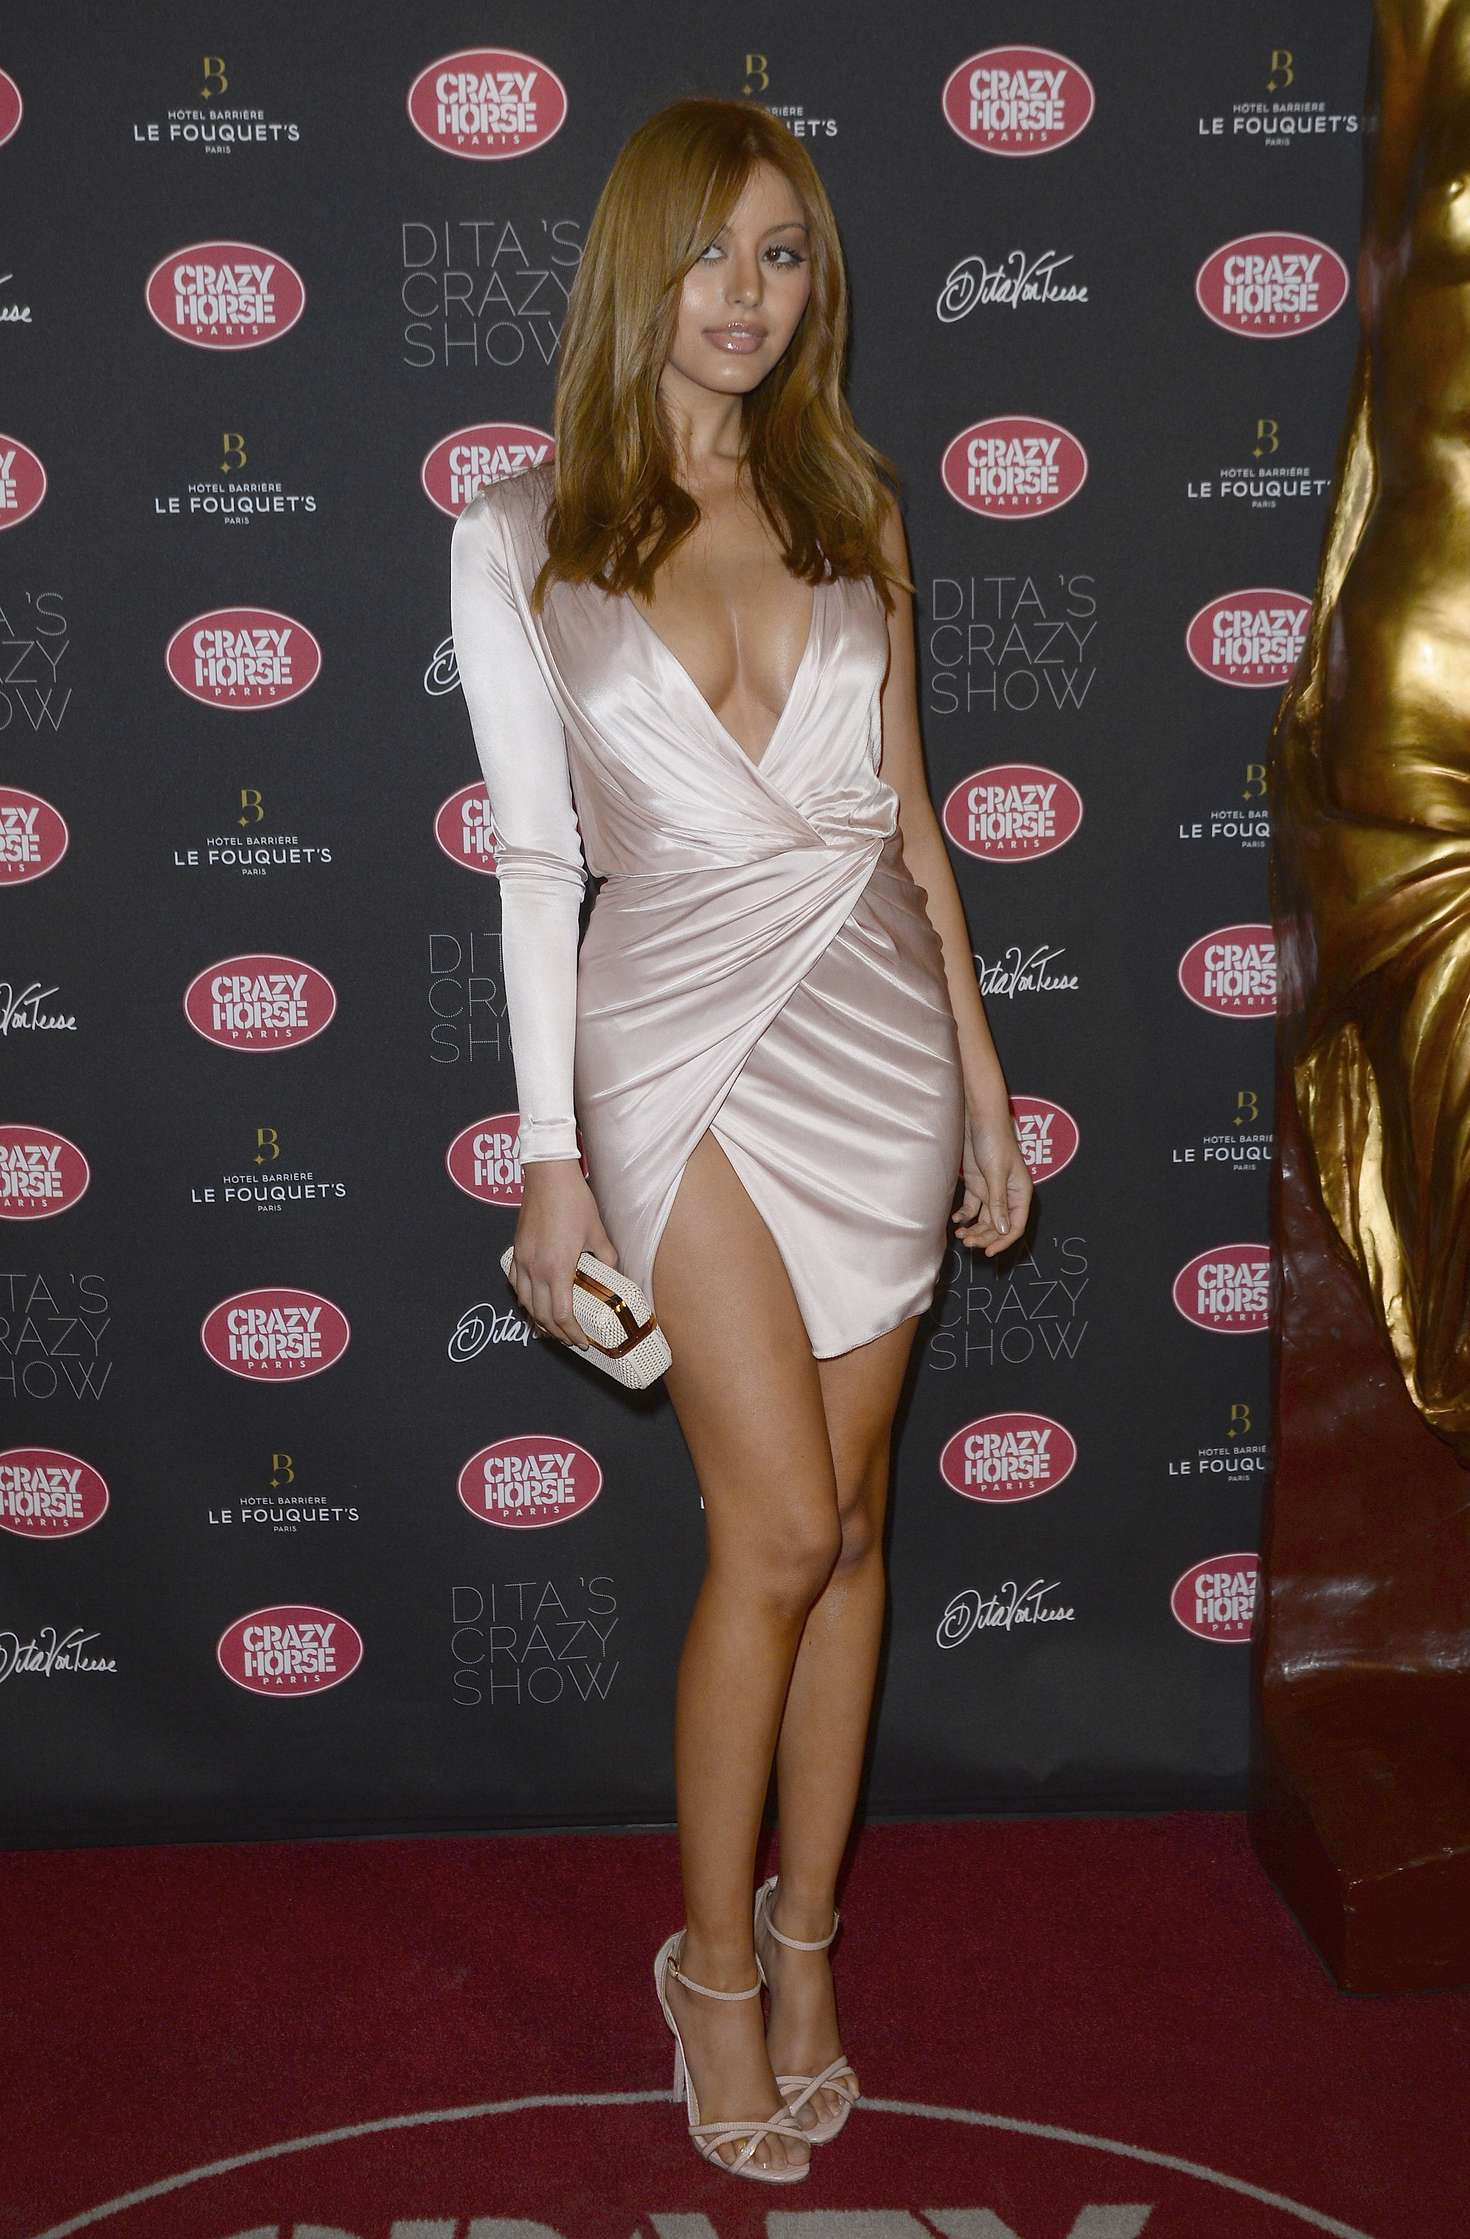 zahia-dehar-areola-slip-pussy-slip-at-crazy-horse-in-paris-20